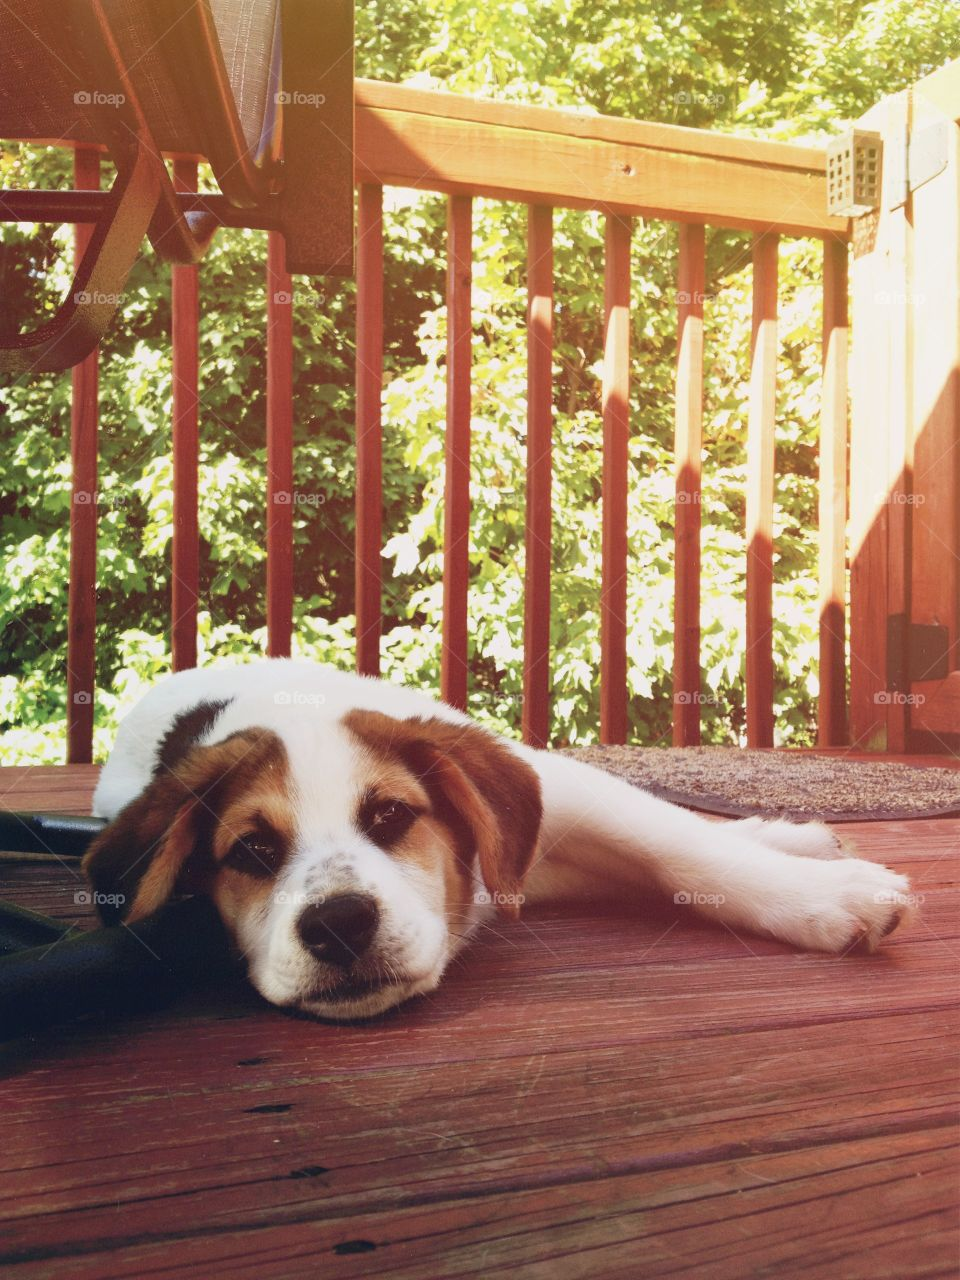 Puppy on porch. Sleepy puppy relaxes on the deck